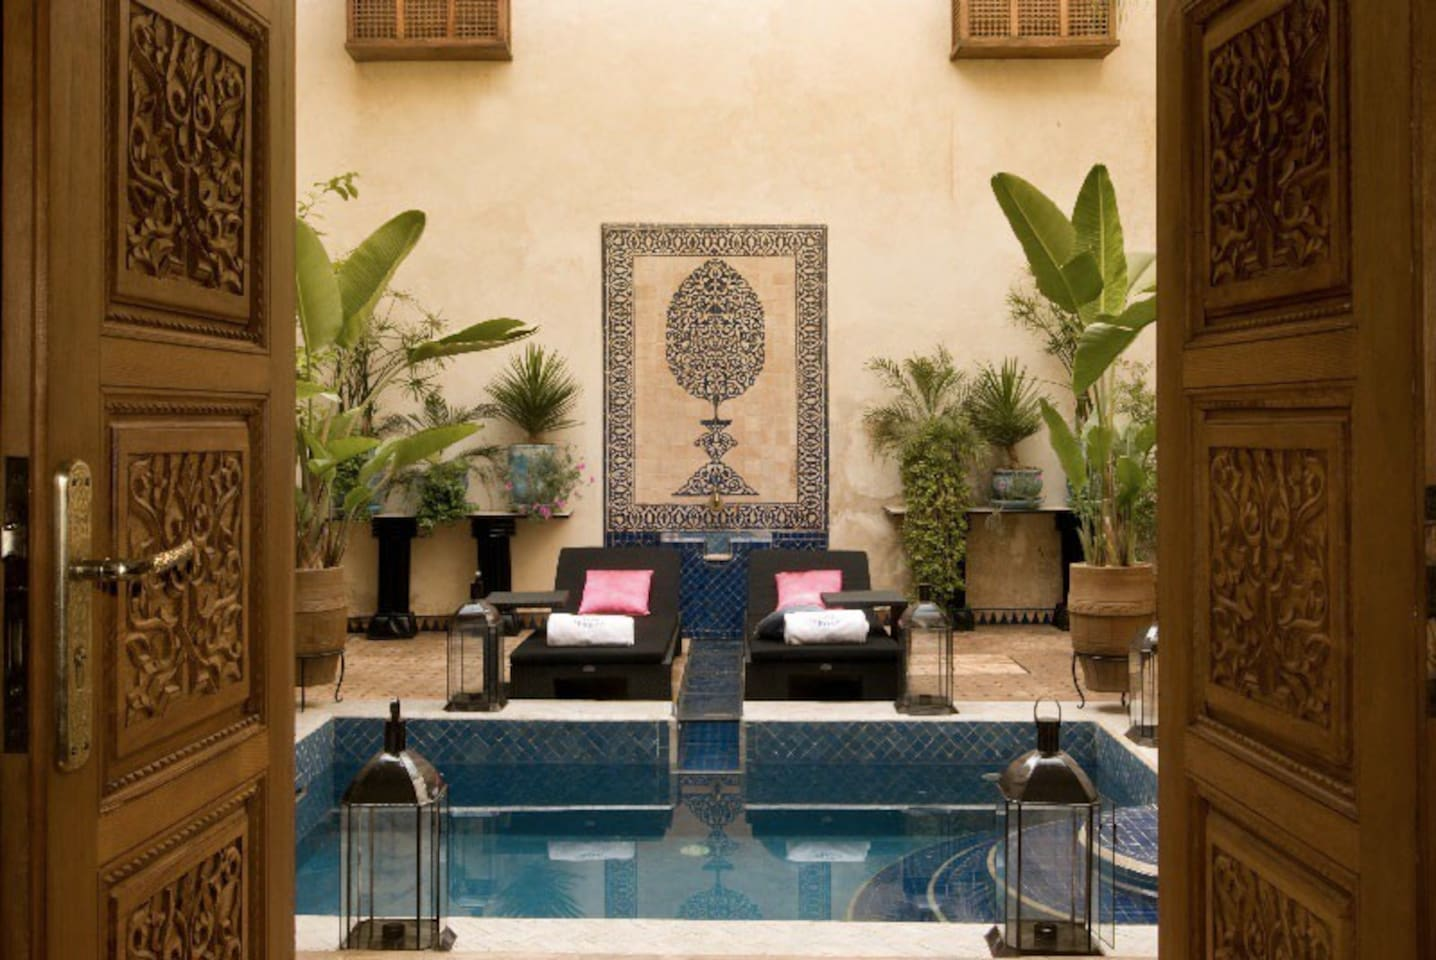 Le Patio is the heart of the Riad with the Pool, and Flowers.